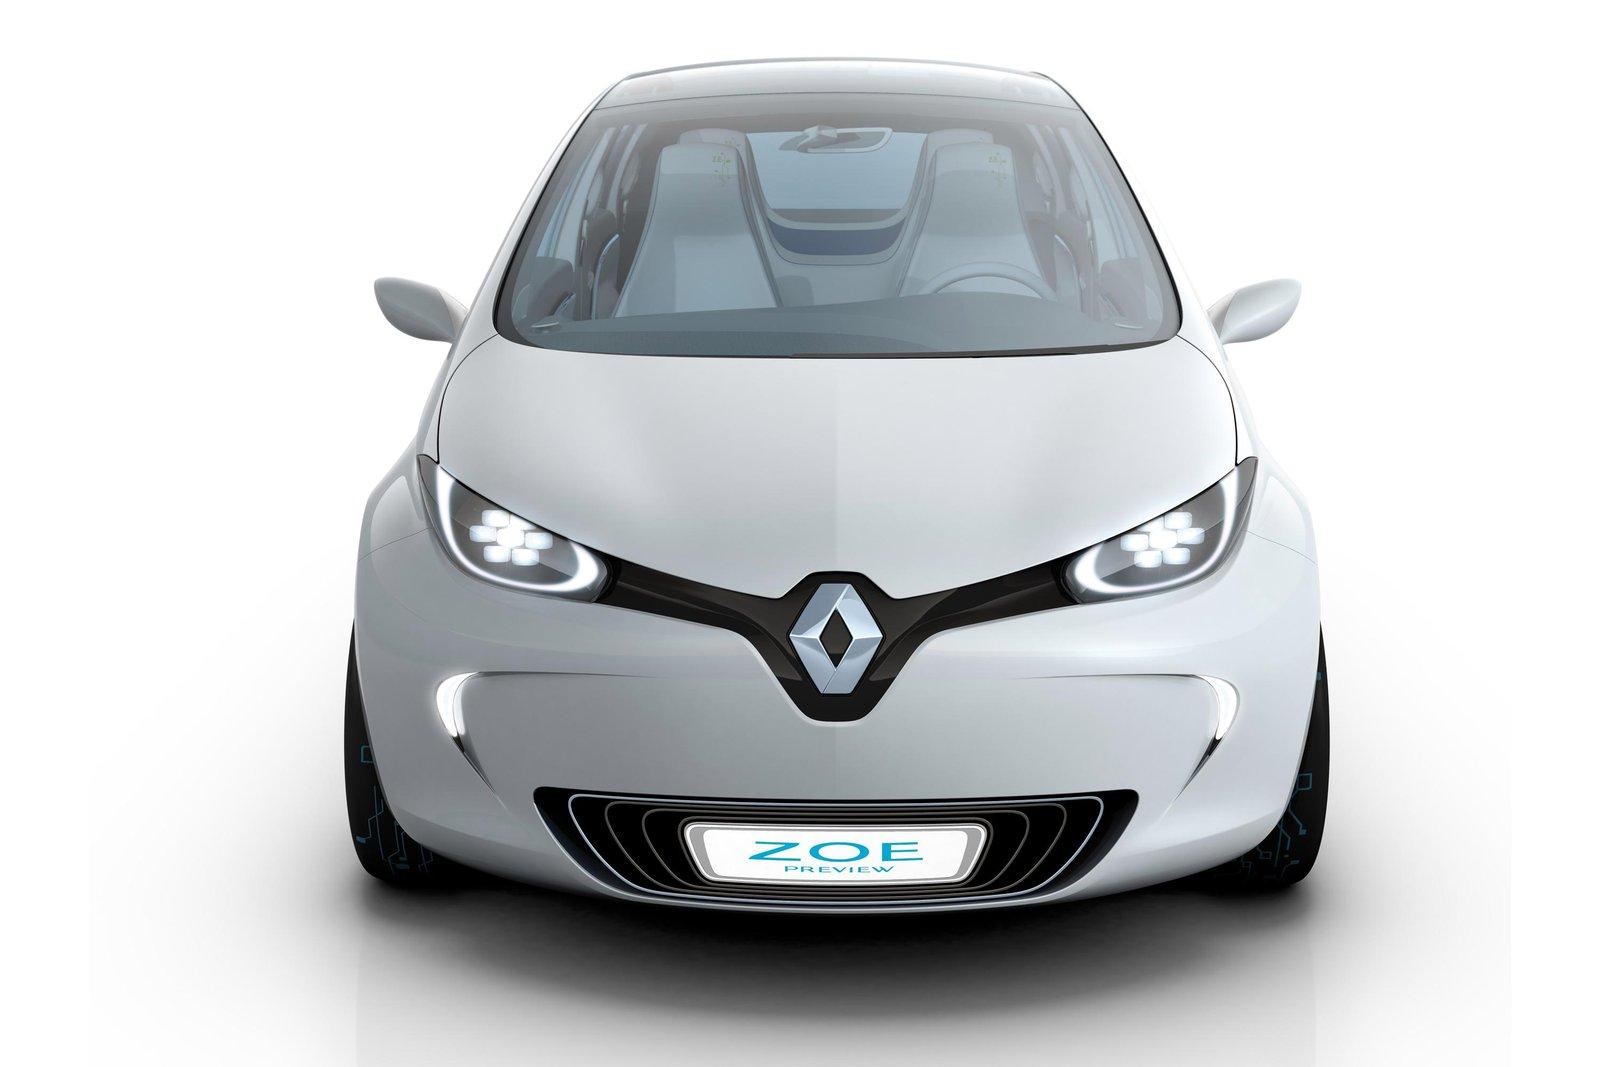 luxury car renault zoe 2013. Black Bedroom Furniture Sets. Home Design Ideas